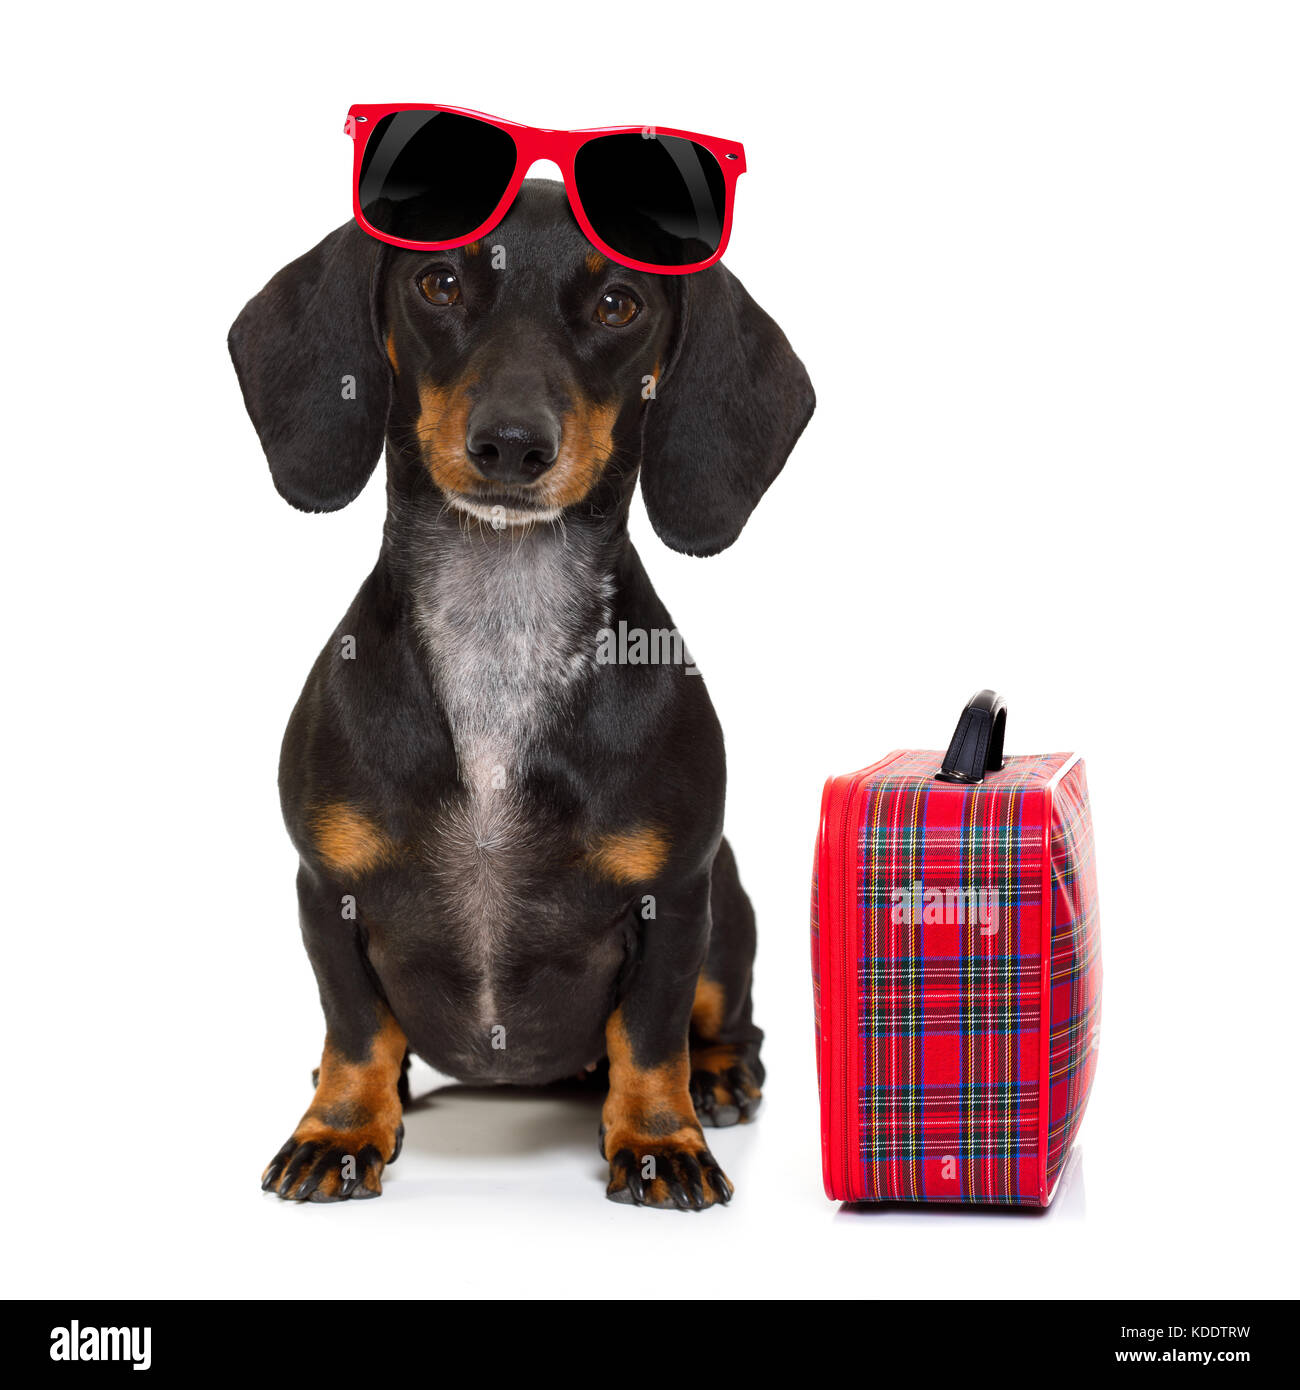 dachshund or sausage  dog on summer vacation holidays with sunglasses and bag or luggage , isolated on white background - Stock Image